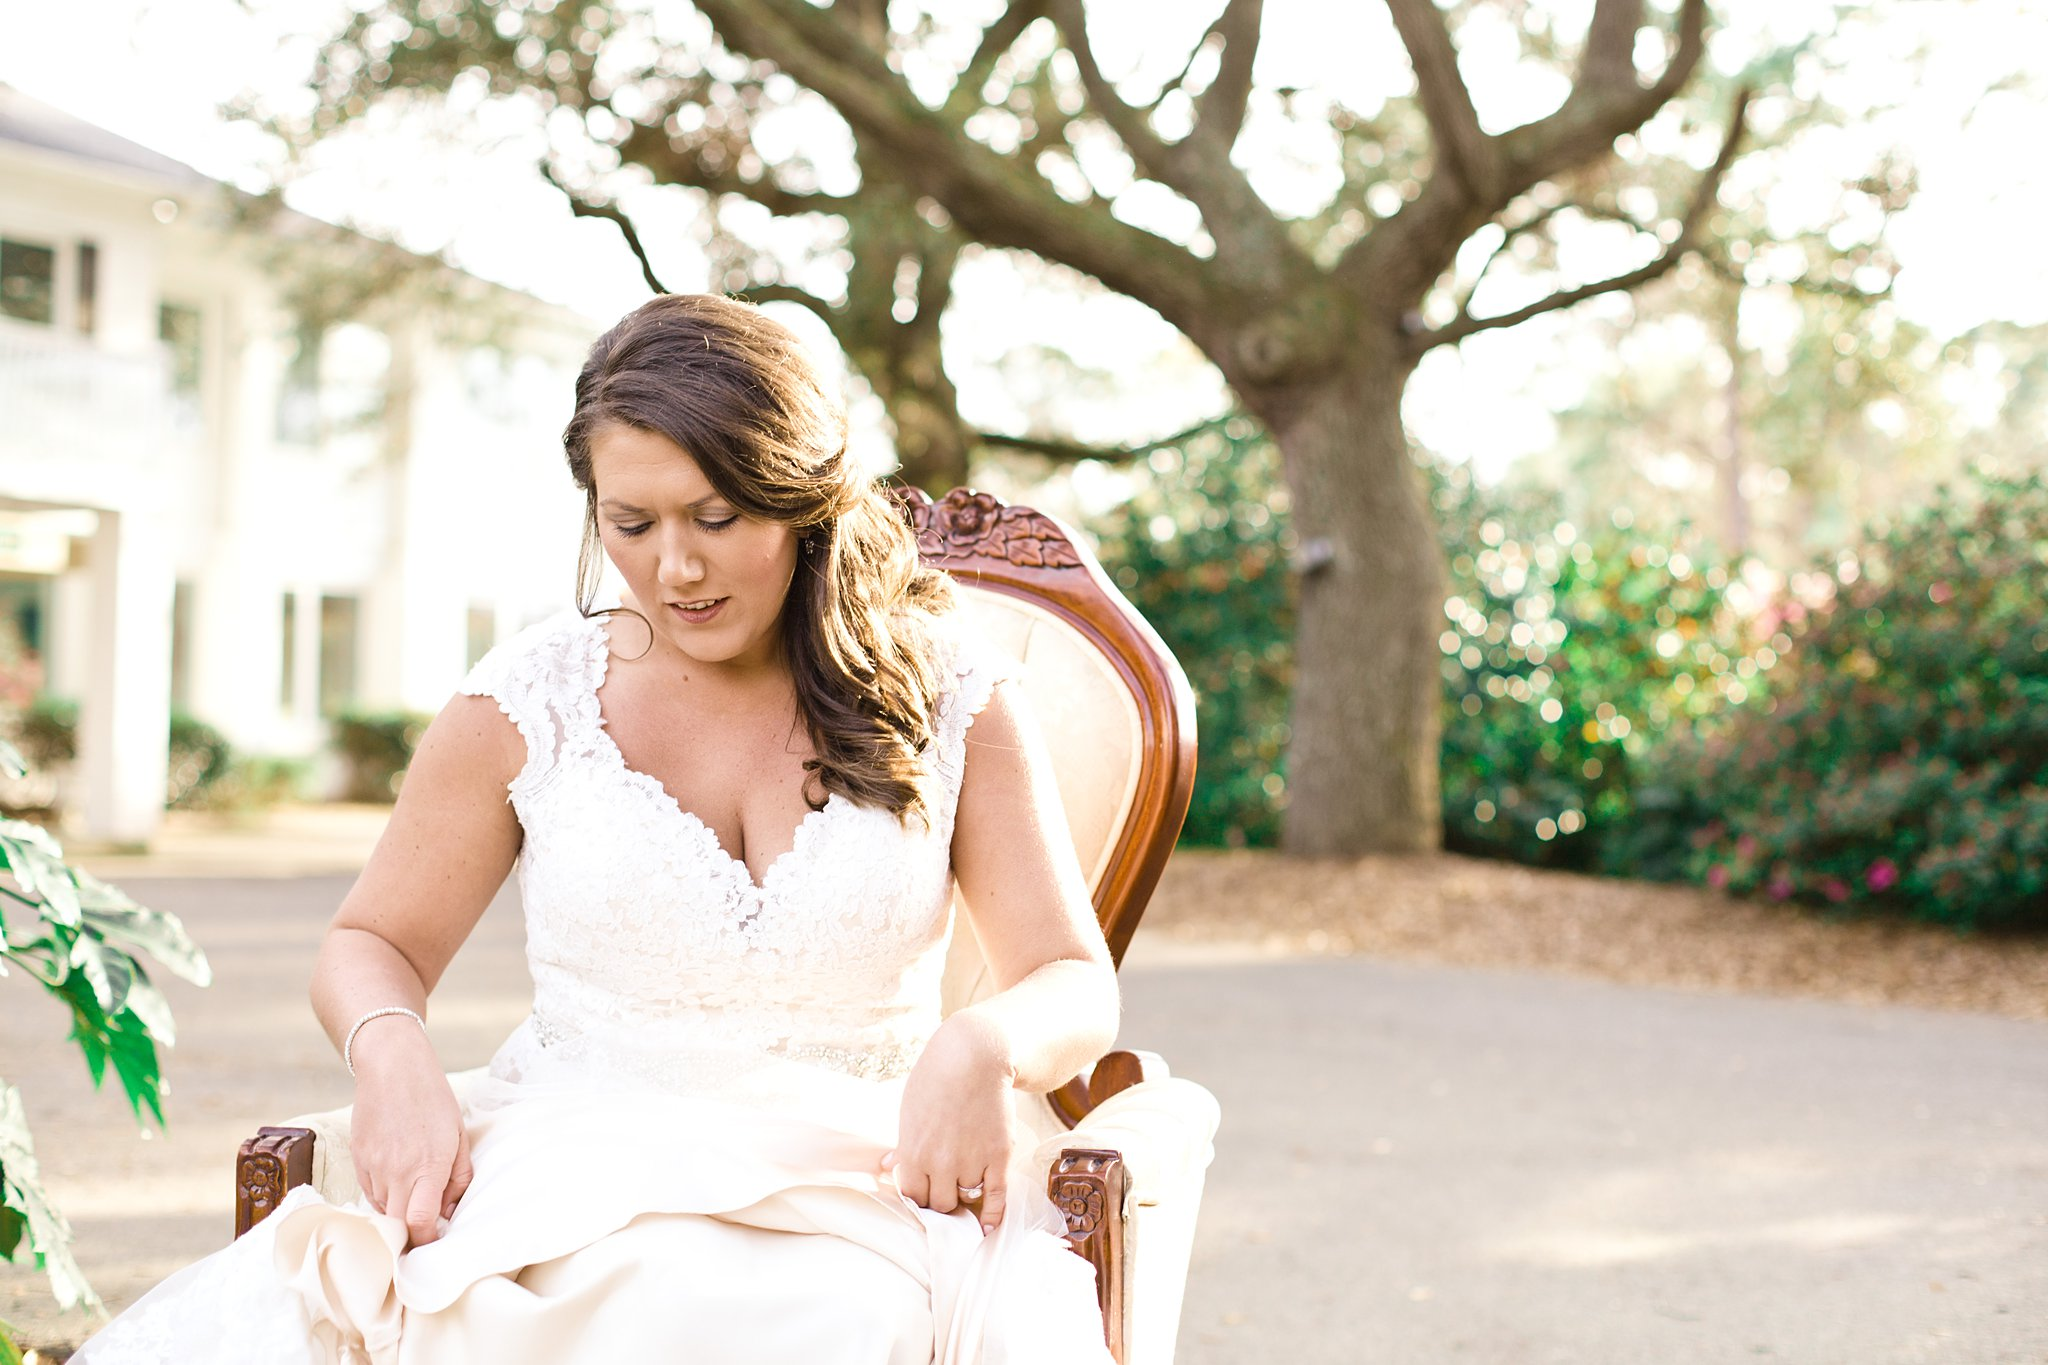 litchfield-golf-country-club-bridal-session-pawleys-island-sc-photos_0140.jpg